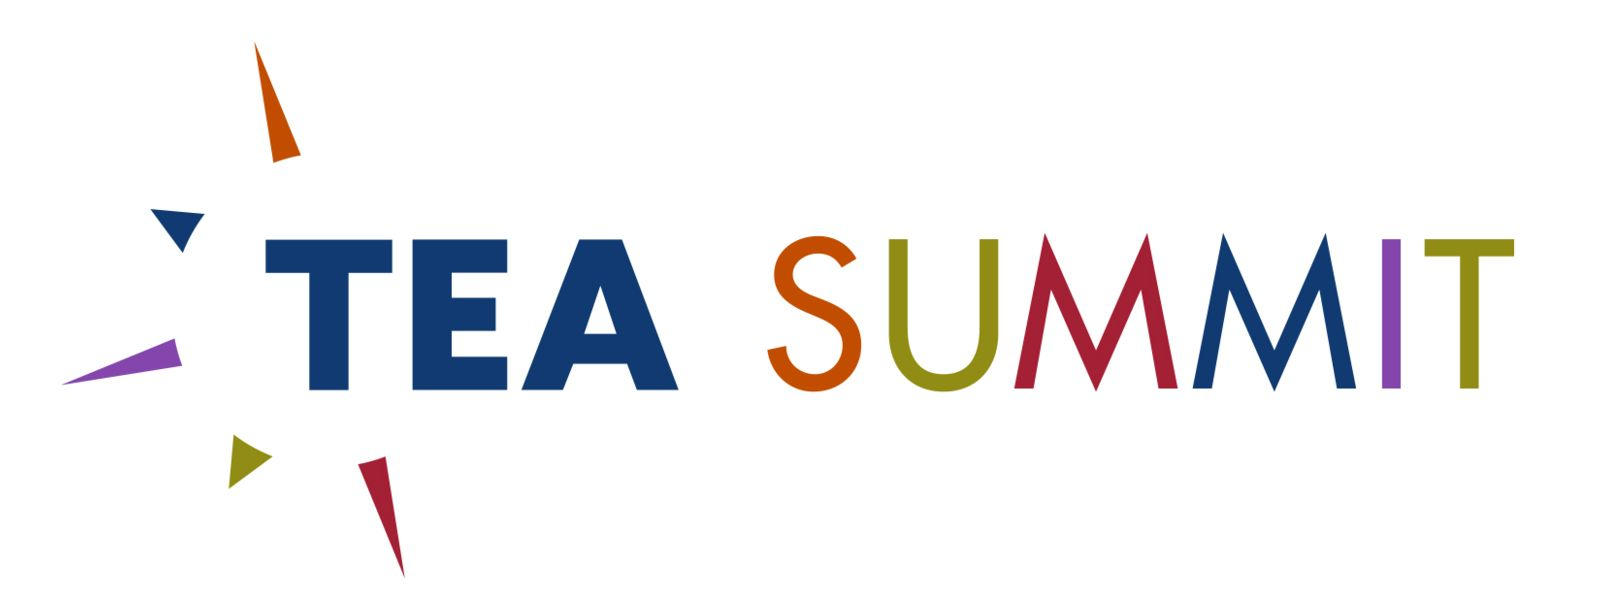 TEA Summit 2019 Day One speakers & sessions - April 11 at Disneyland Resort